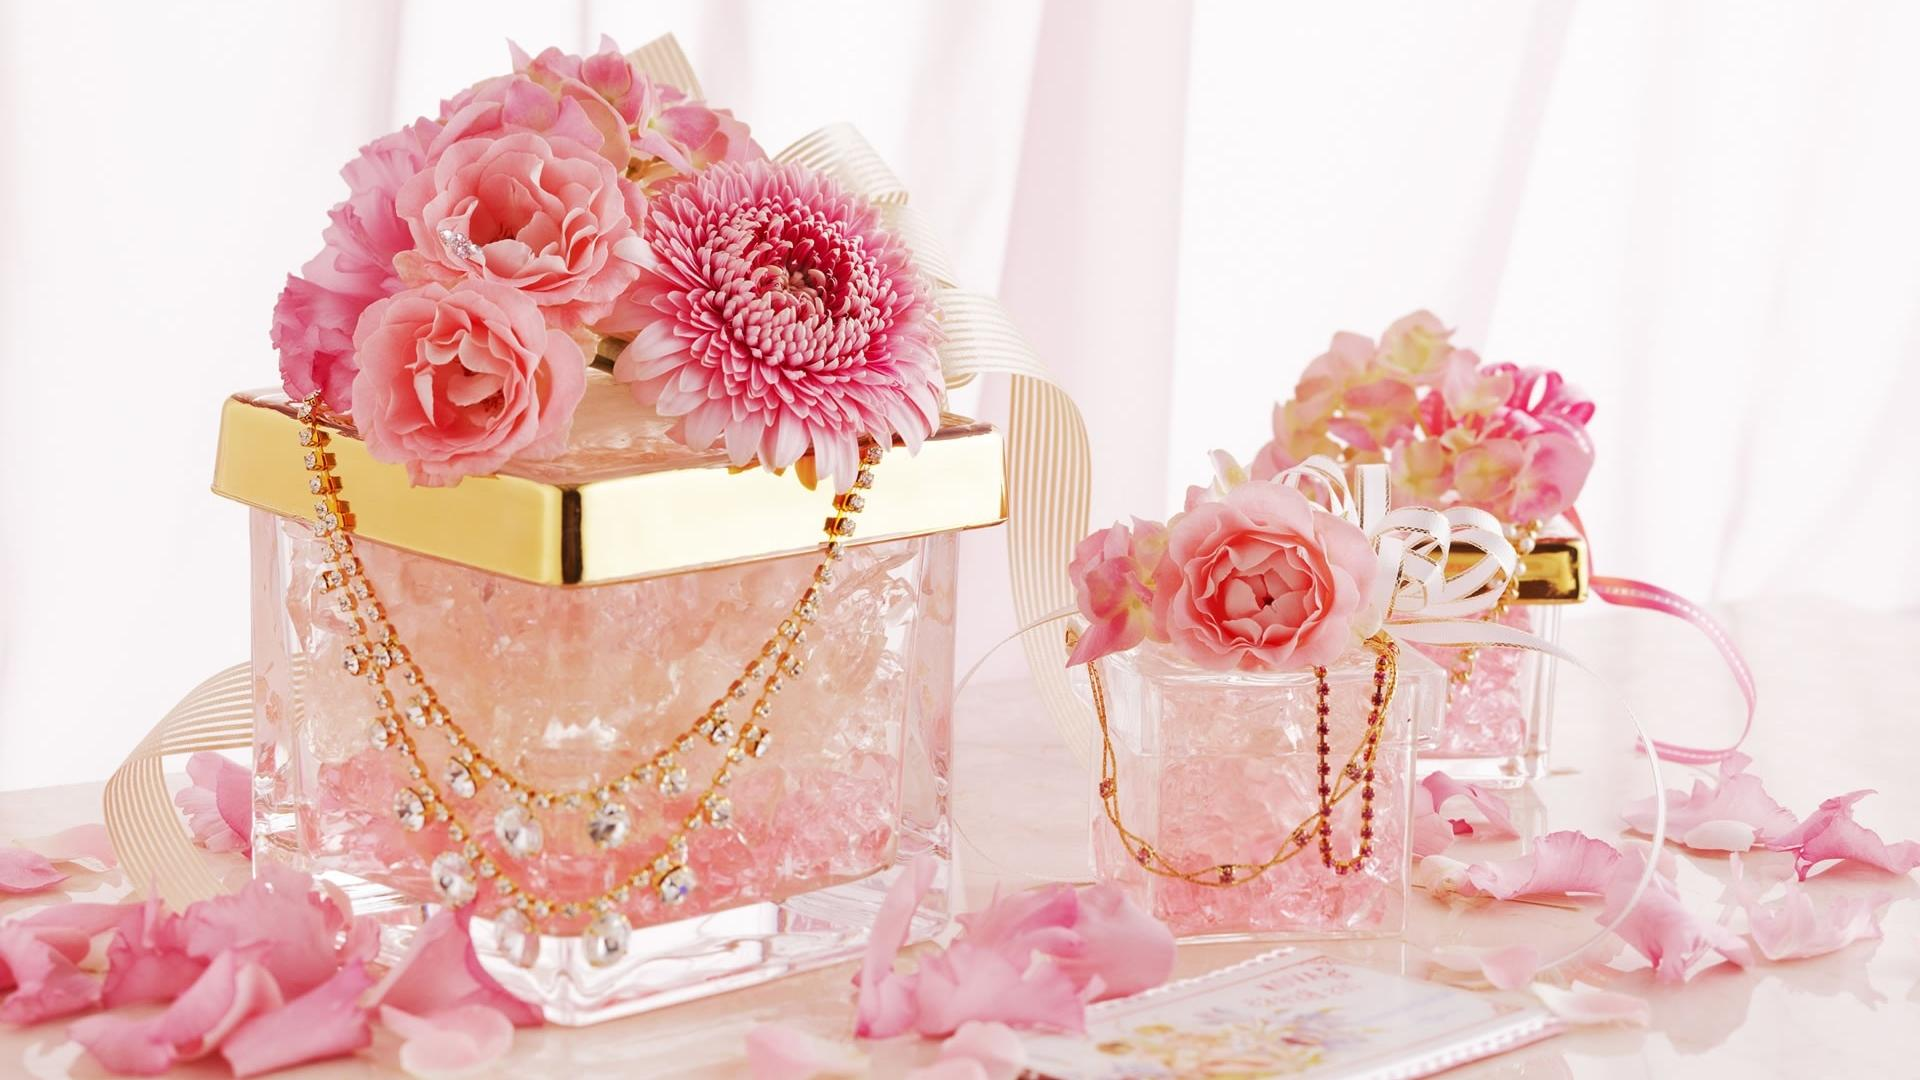 Pink Flowers And Jewelry Hd Wallpaper Background Image